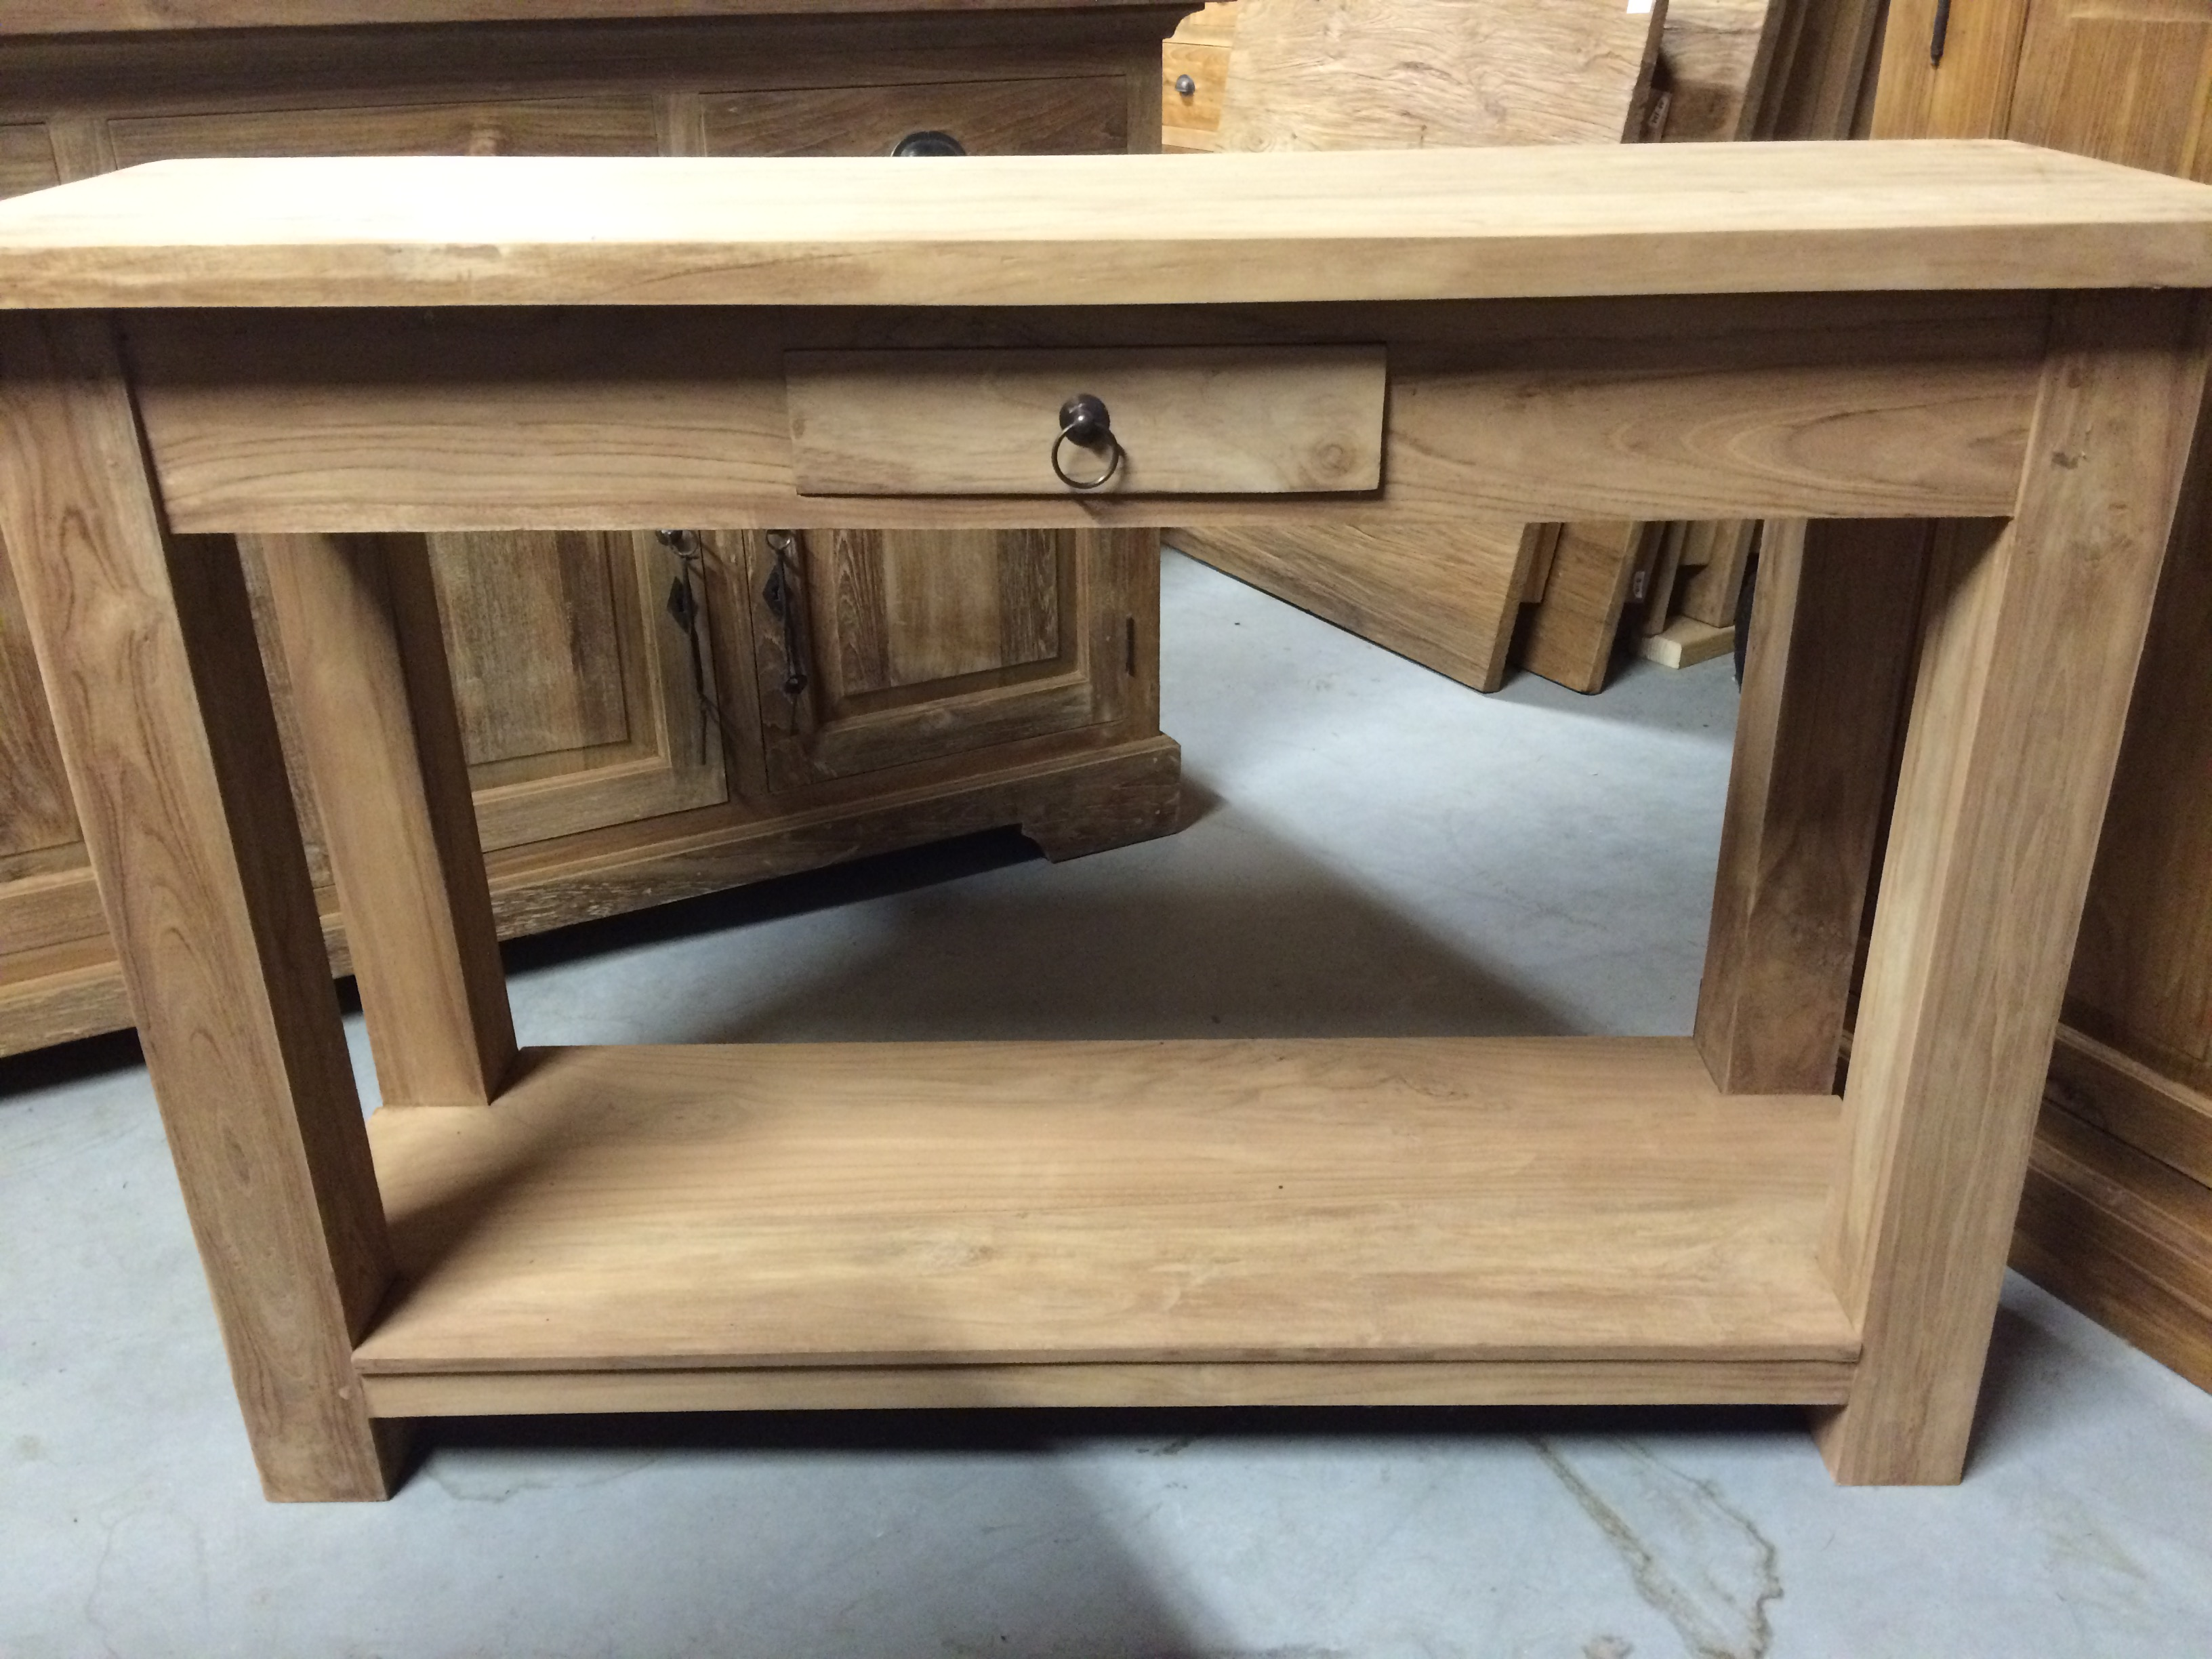 Sidetable Teak 3 Lades.Klassiek Model Wandtafel